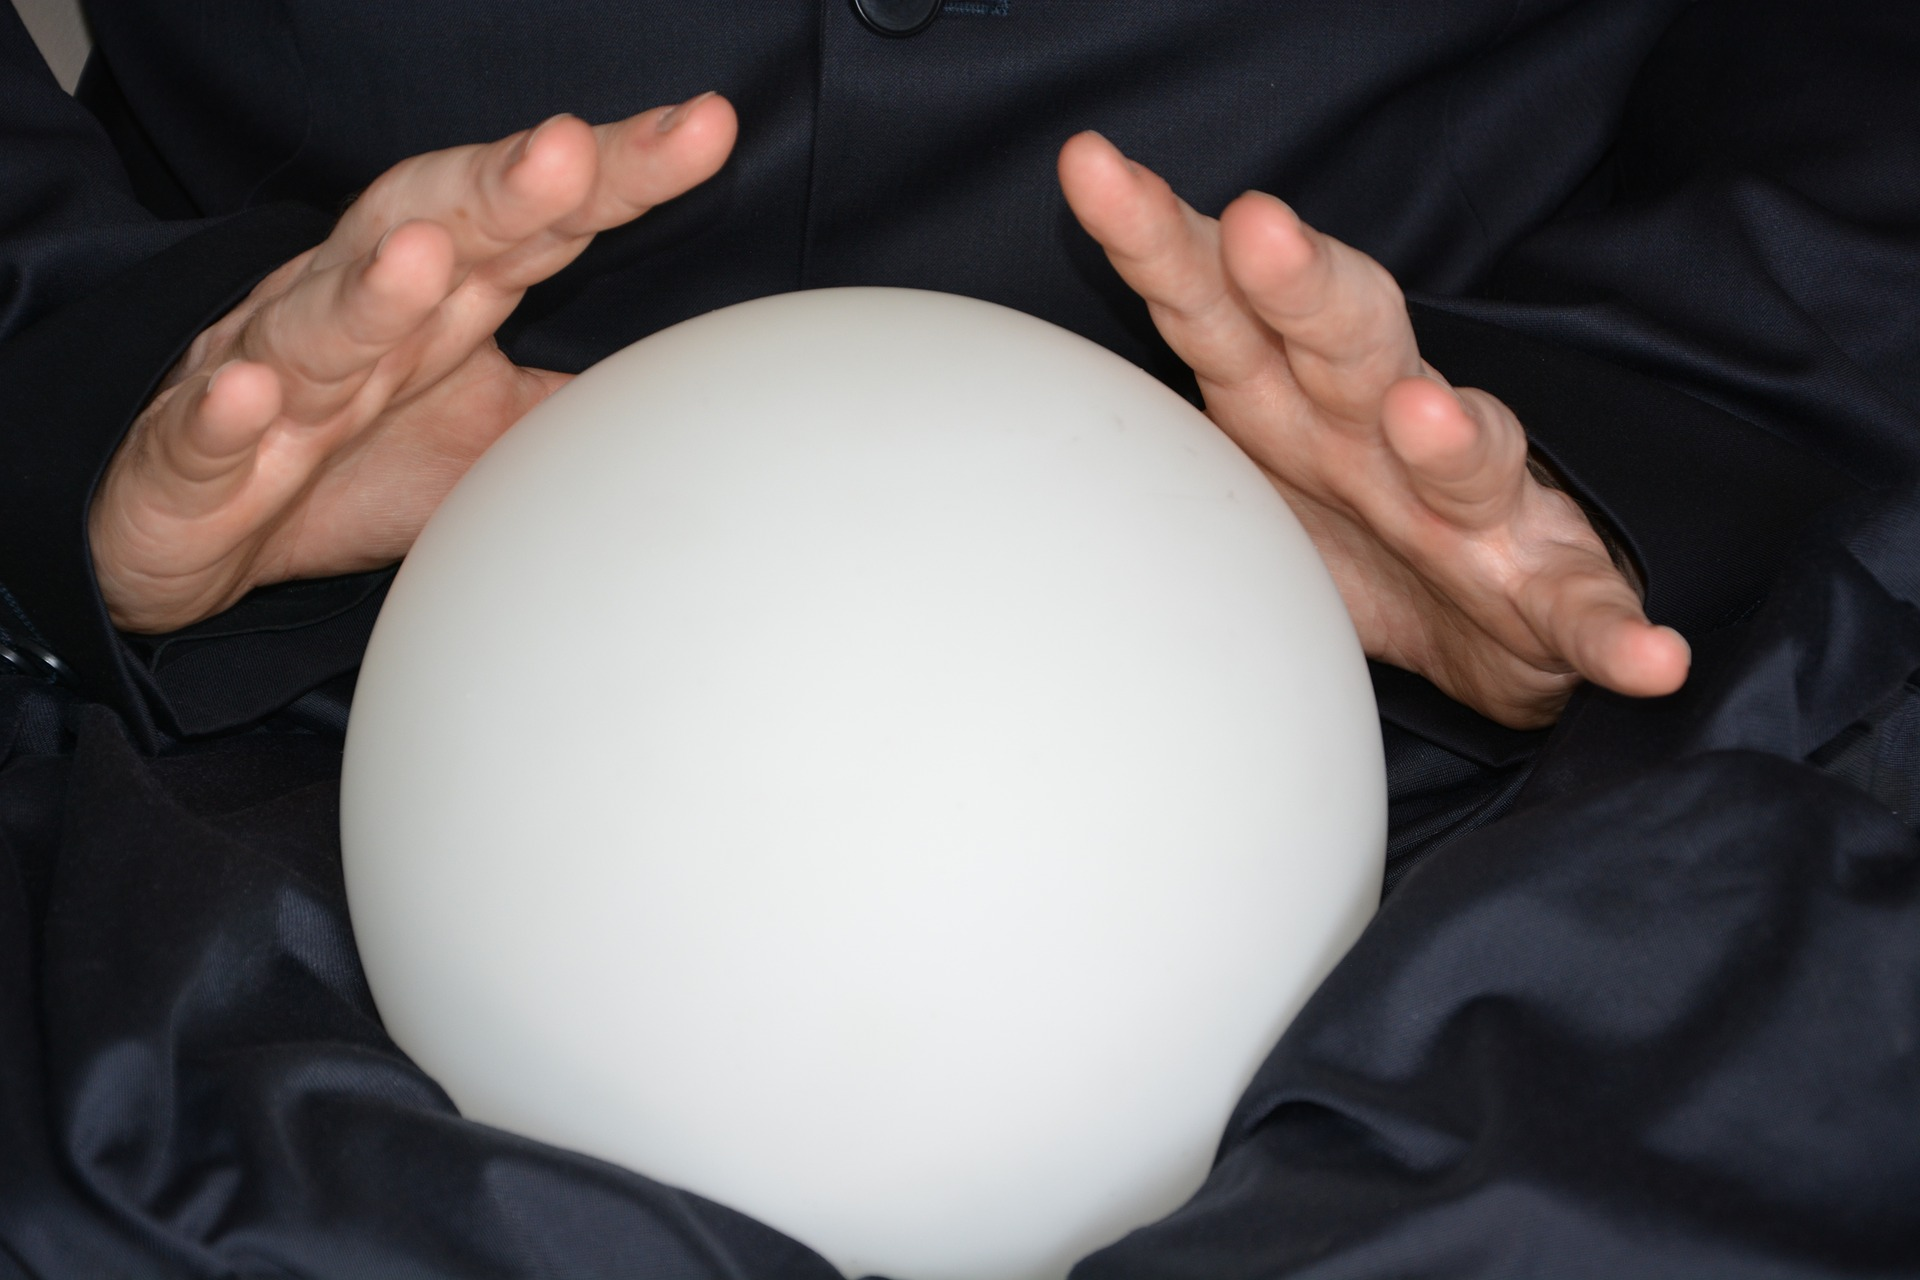 occult, occult day, science, crystal ball